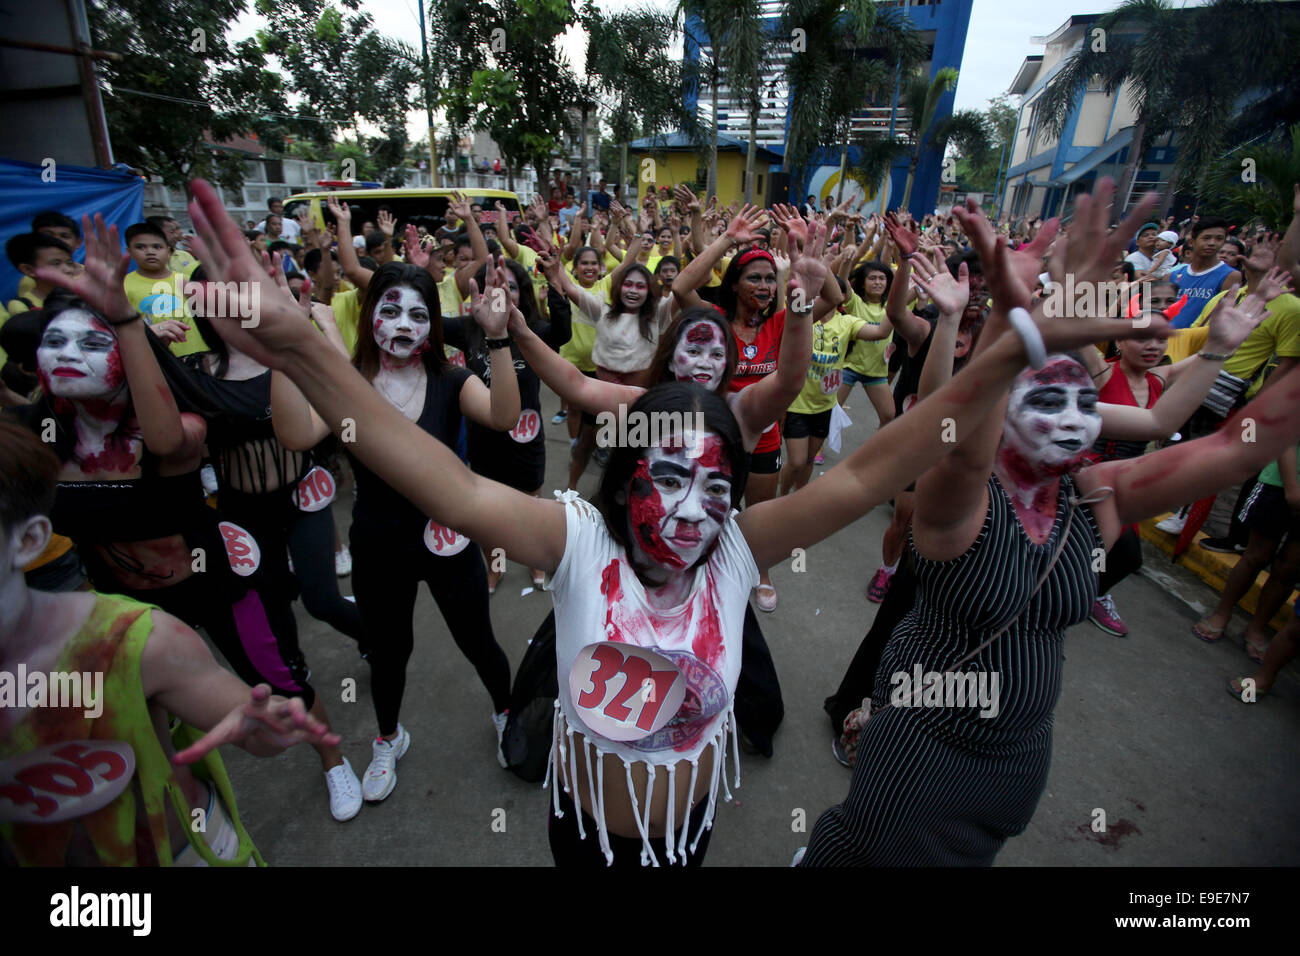 People wearing zombie make-up and costumes dance along with other participants during a Zombie Zumba Party in Mandaluyong City the Philippines Oct. 26 ...  sc 1 st  Alamy & Mandaluyong Philippines. 26th Oct 2014. People wearing zombie ...